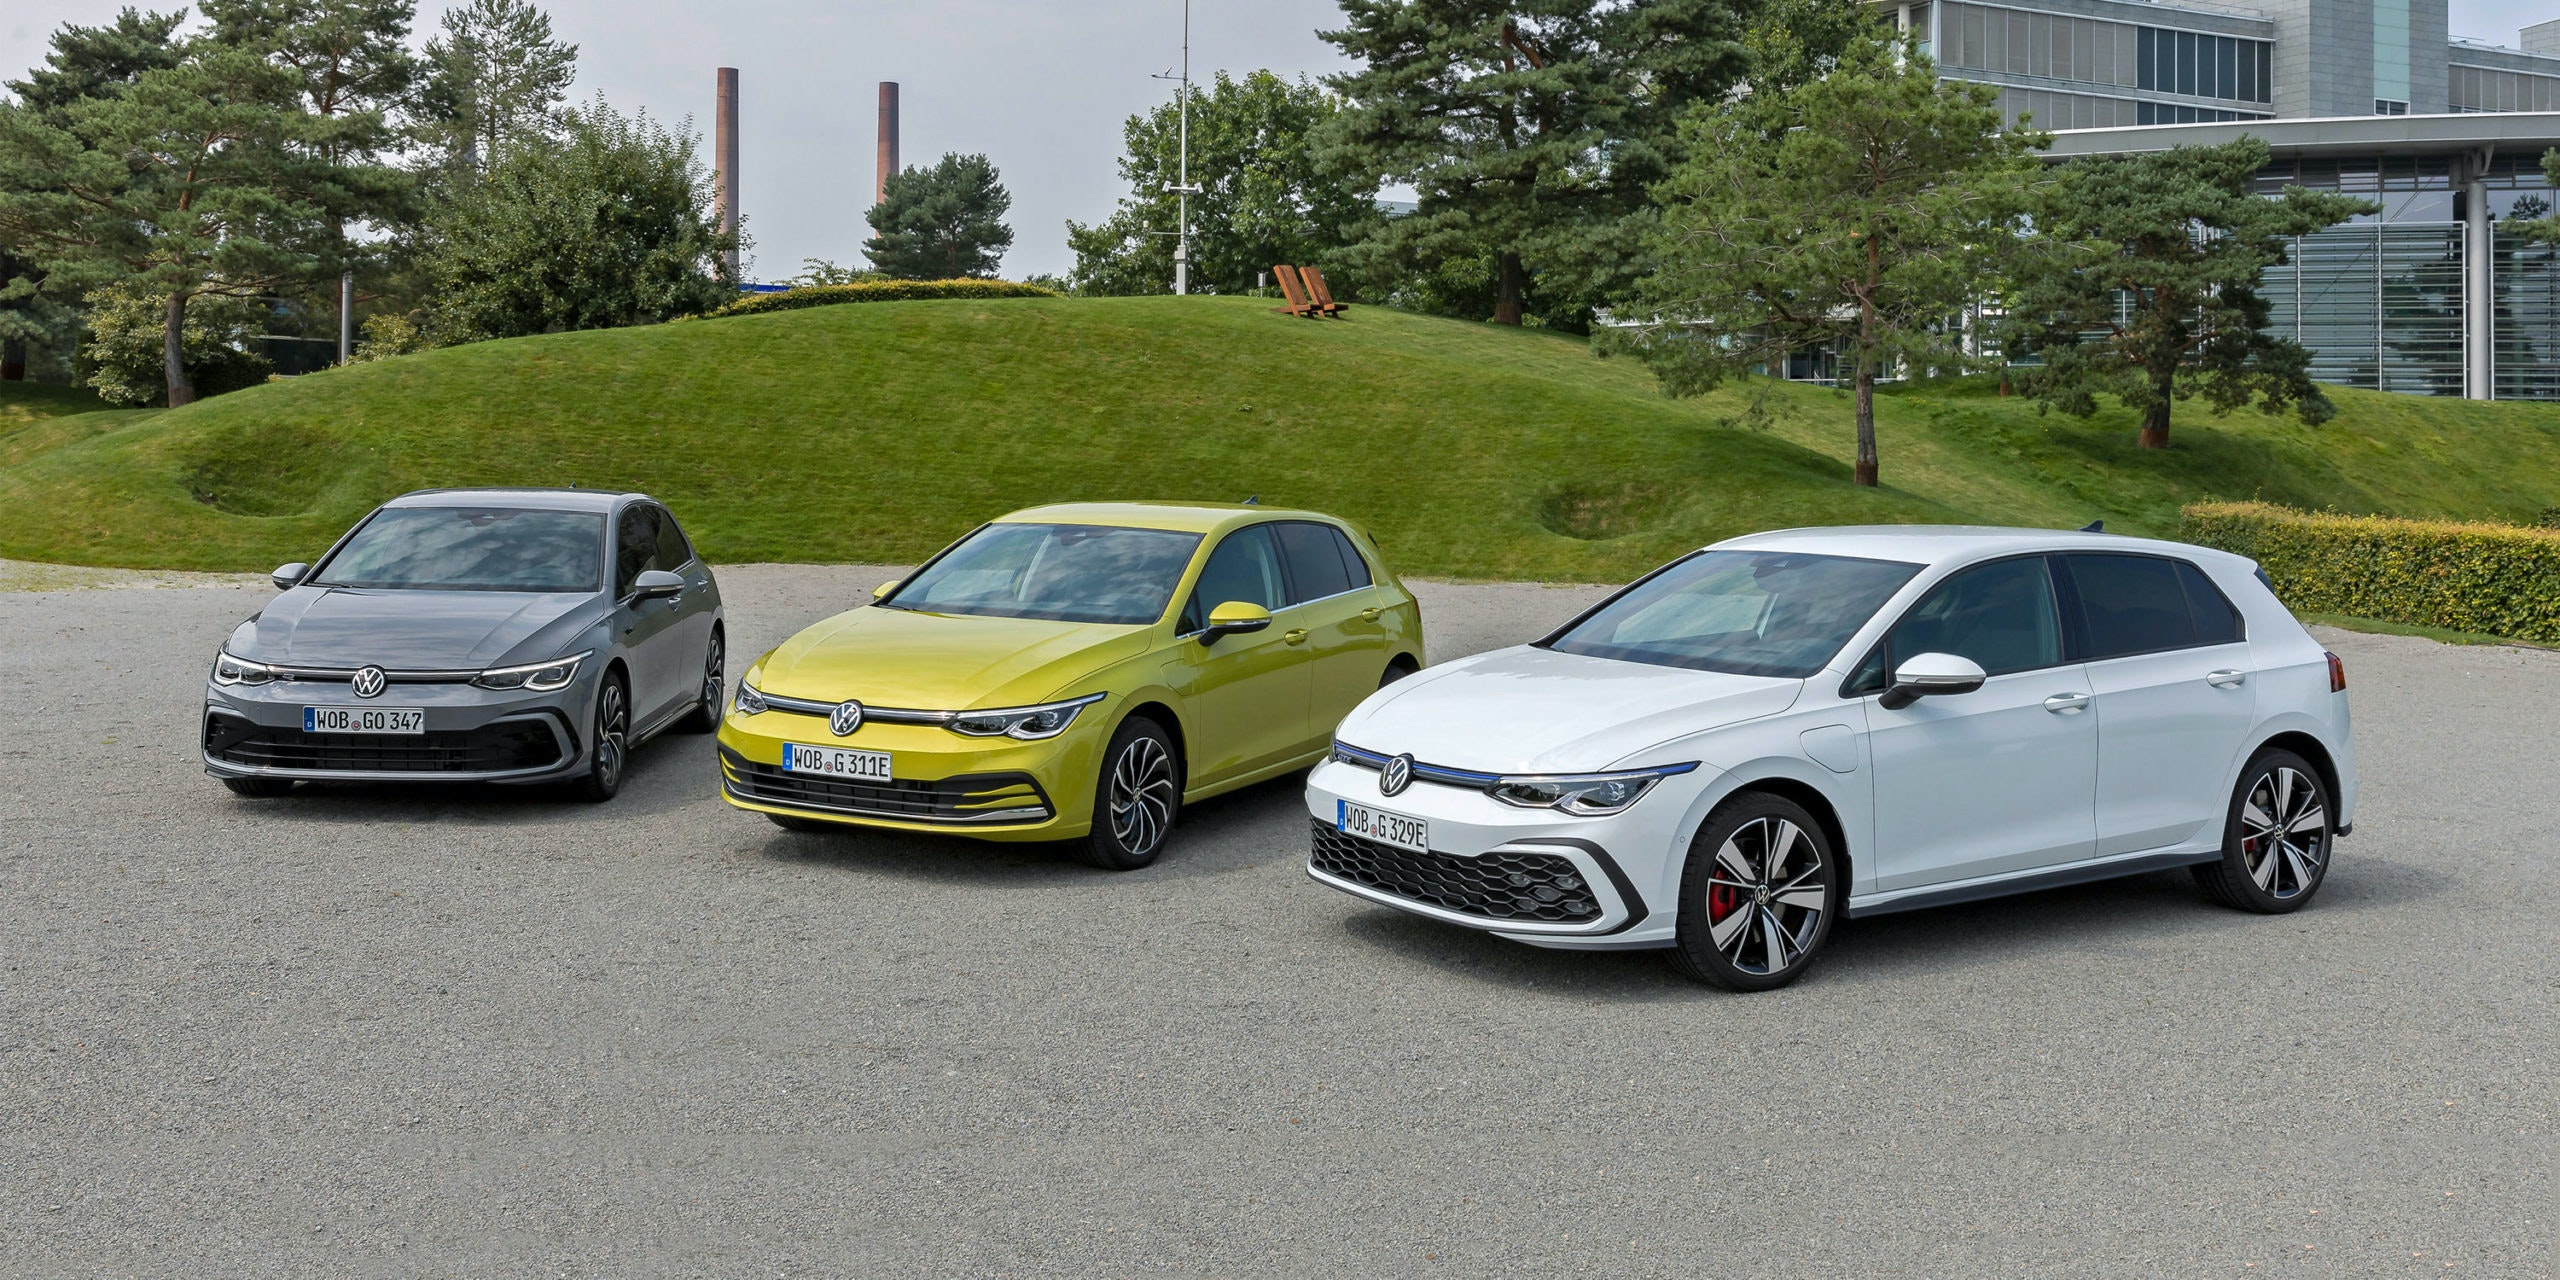 New Vw Golf Mild Hybrid And Plug In Hybrid Models Revealed Carwow